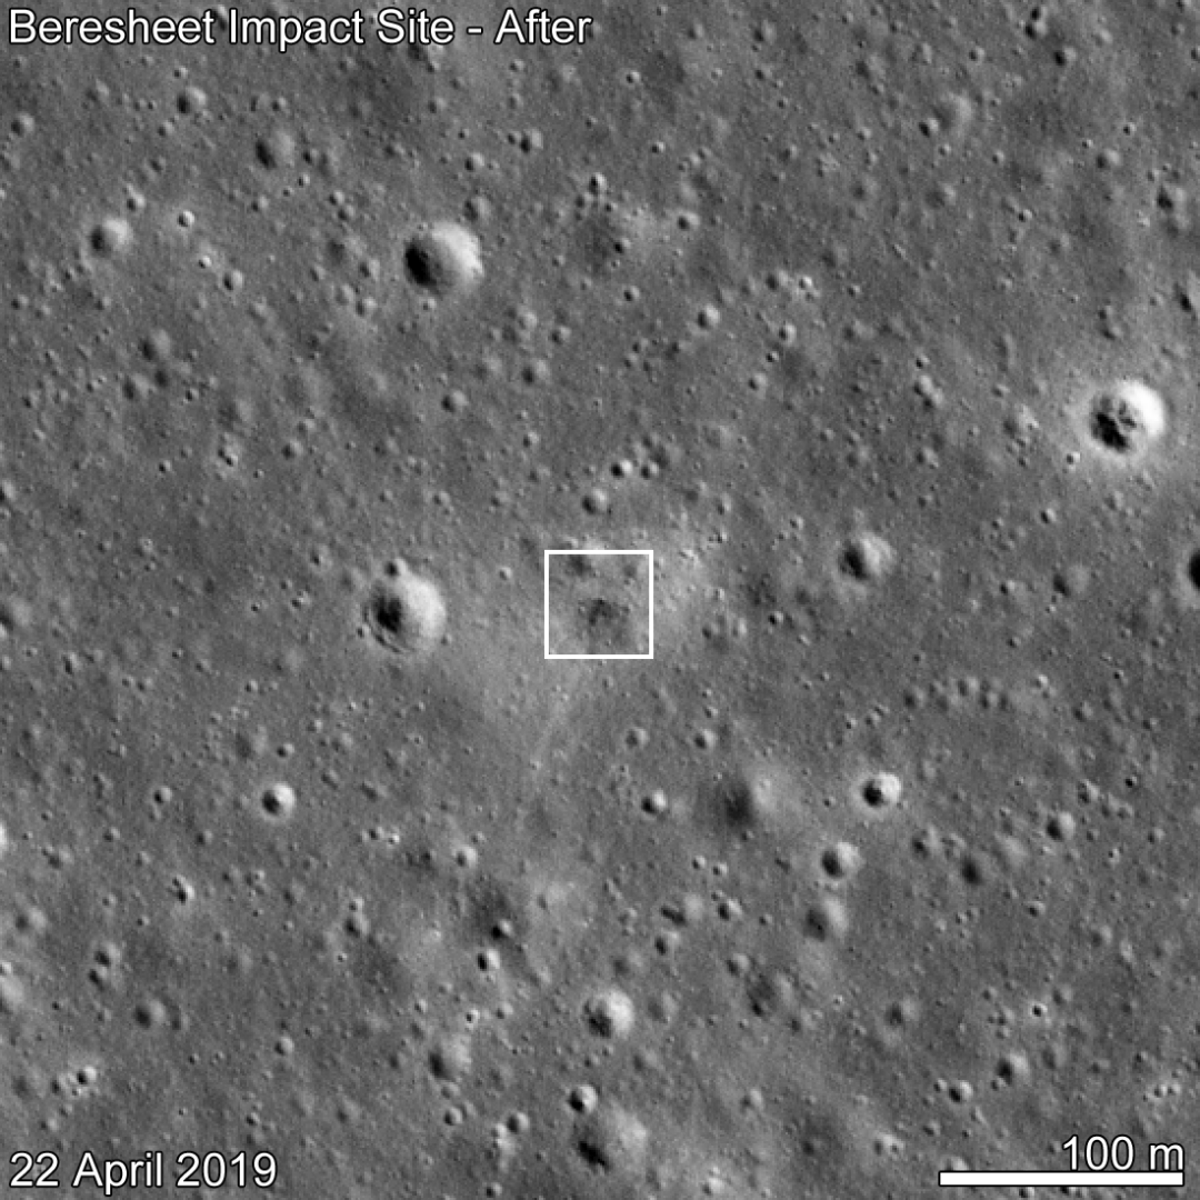 SpaceIL Beresheet crash site as seen by LROC eleven days after the attempted landing. Date in lower left indicates when the NAC image was acquired,